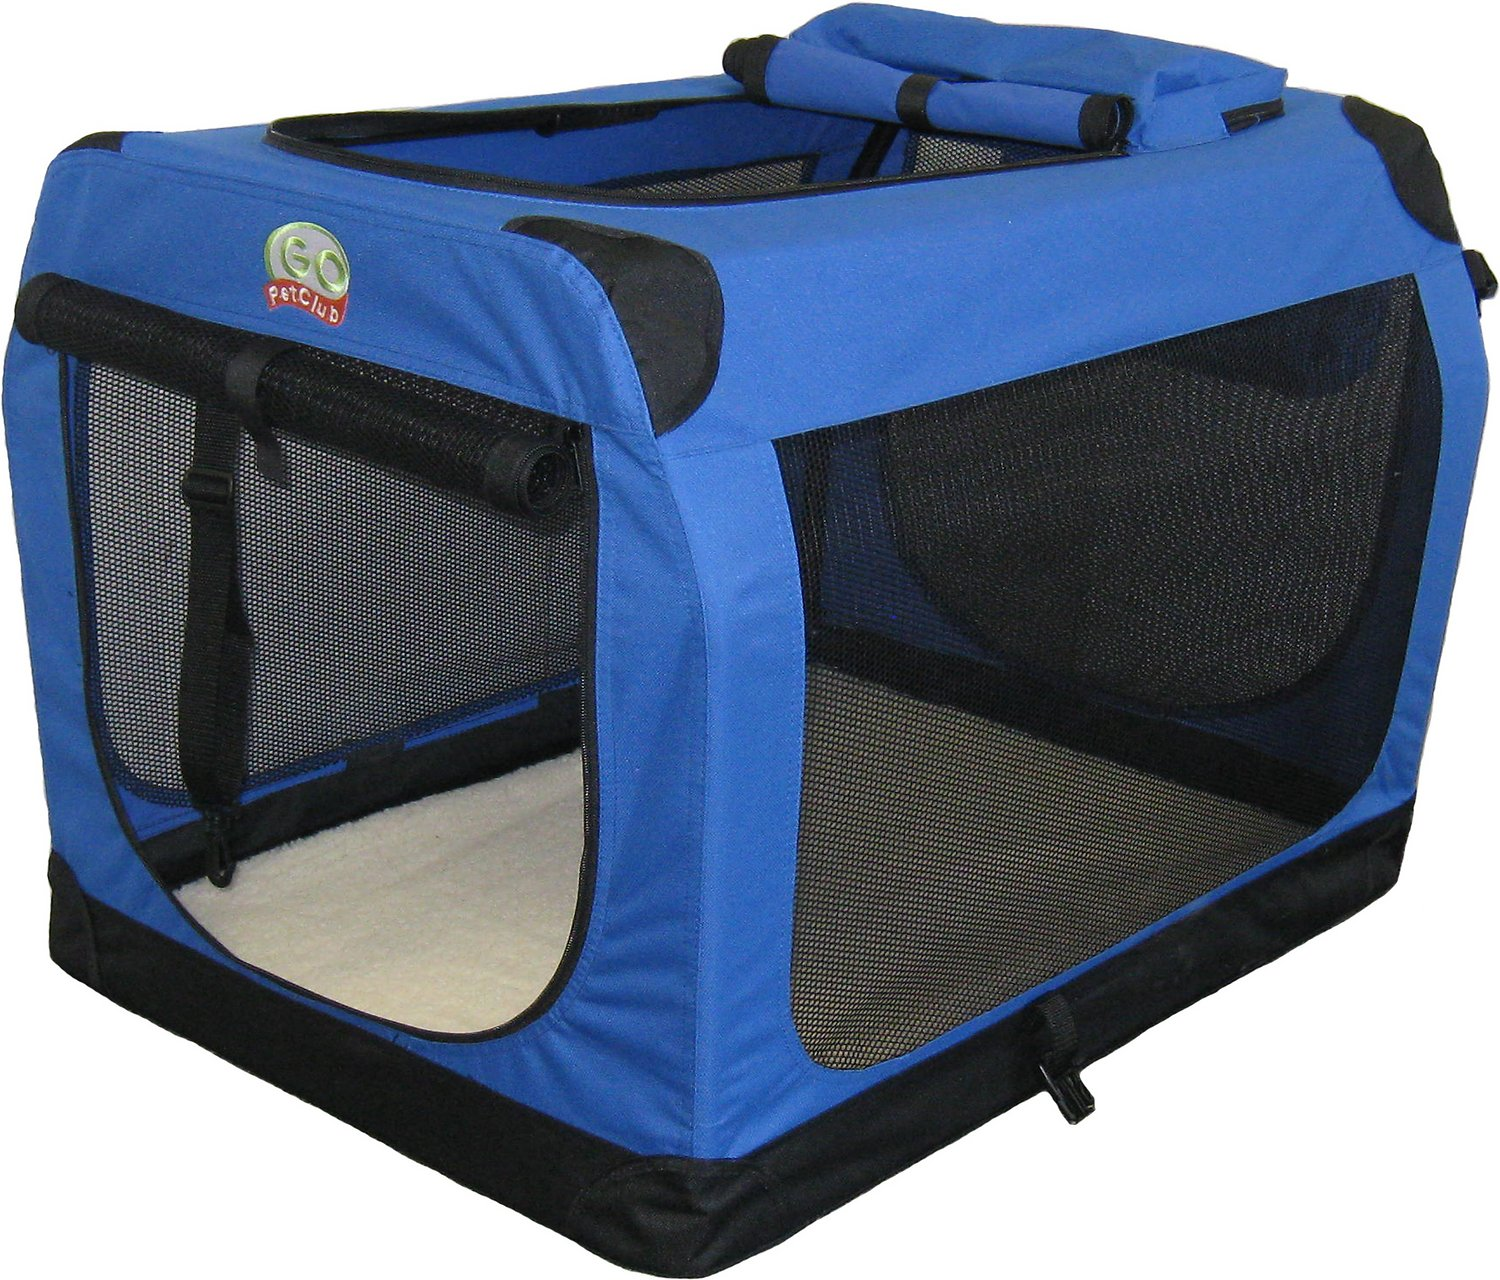 10 Best Top Rated Portable Cat Carrier Comparison, Reviews & Buyer's Guide